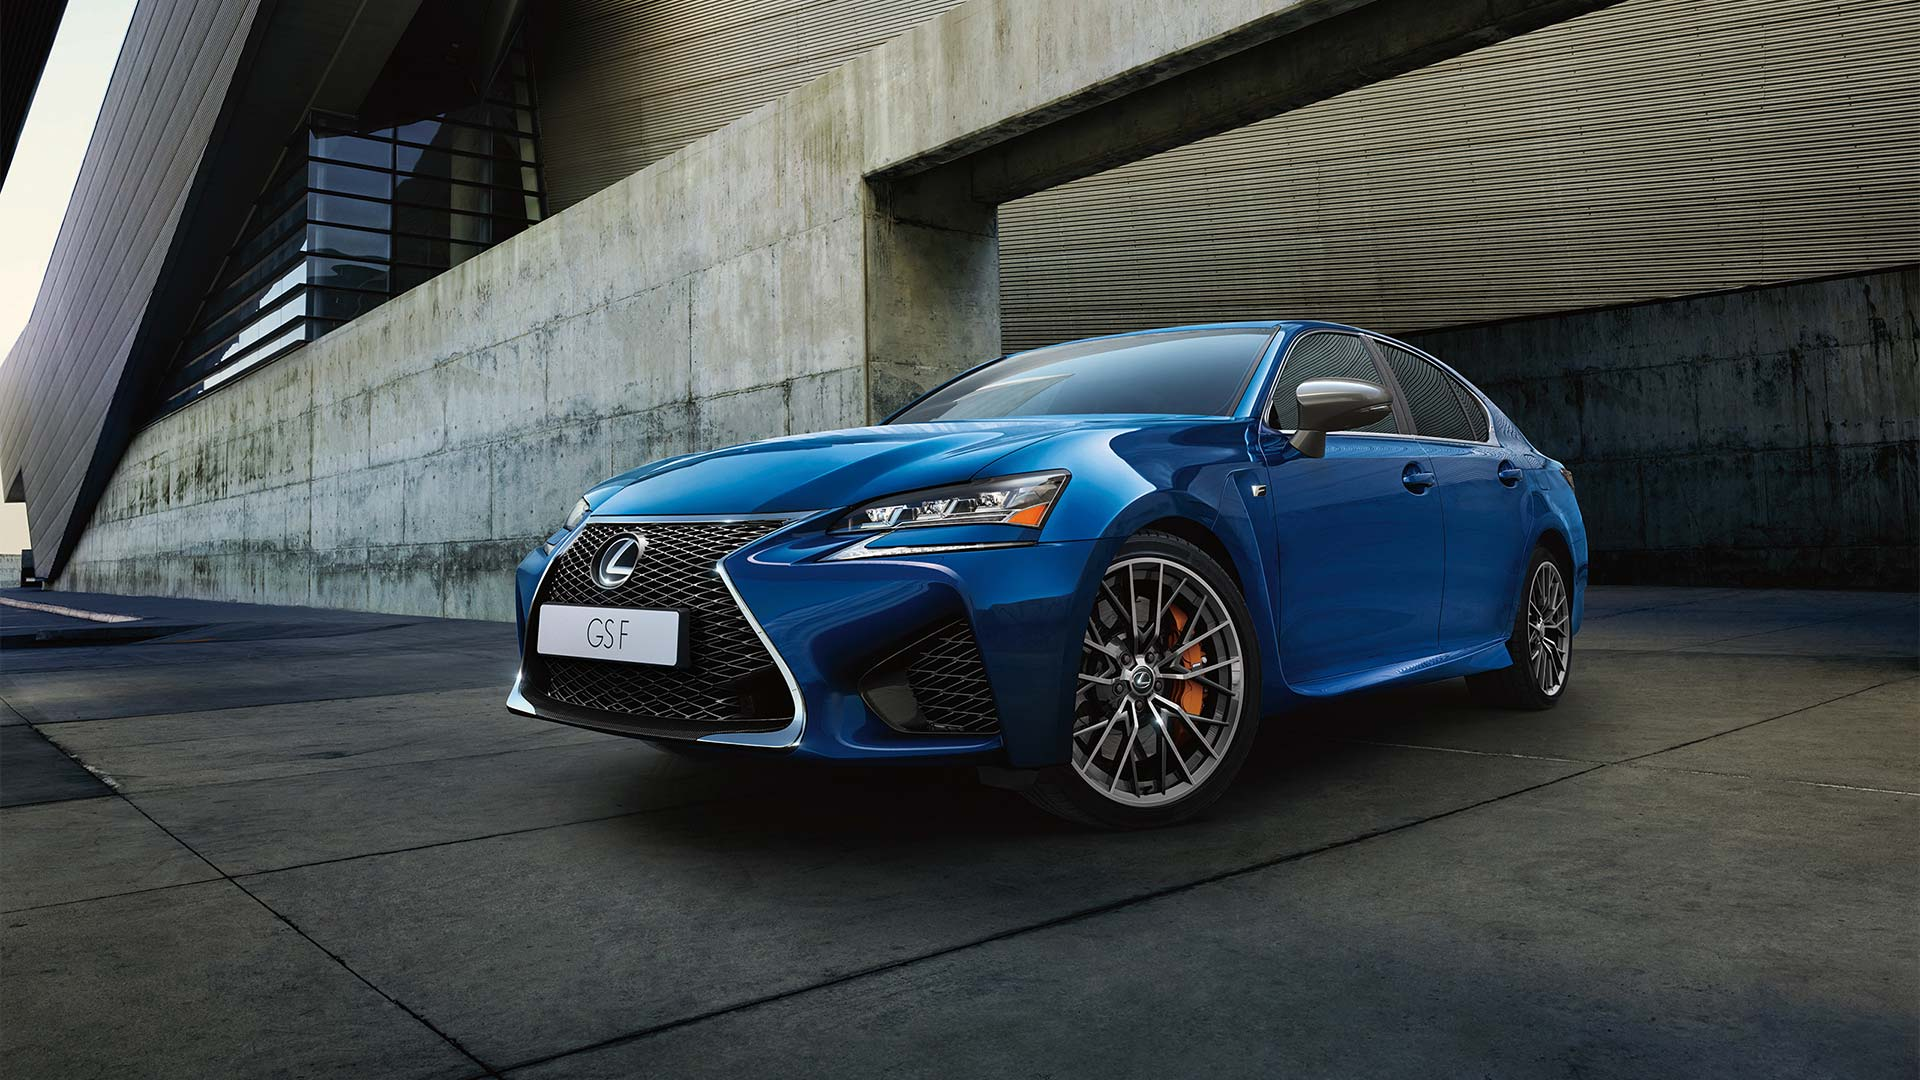 lexus f models section03 16